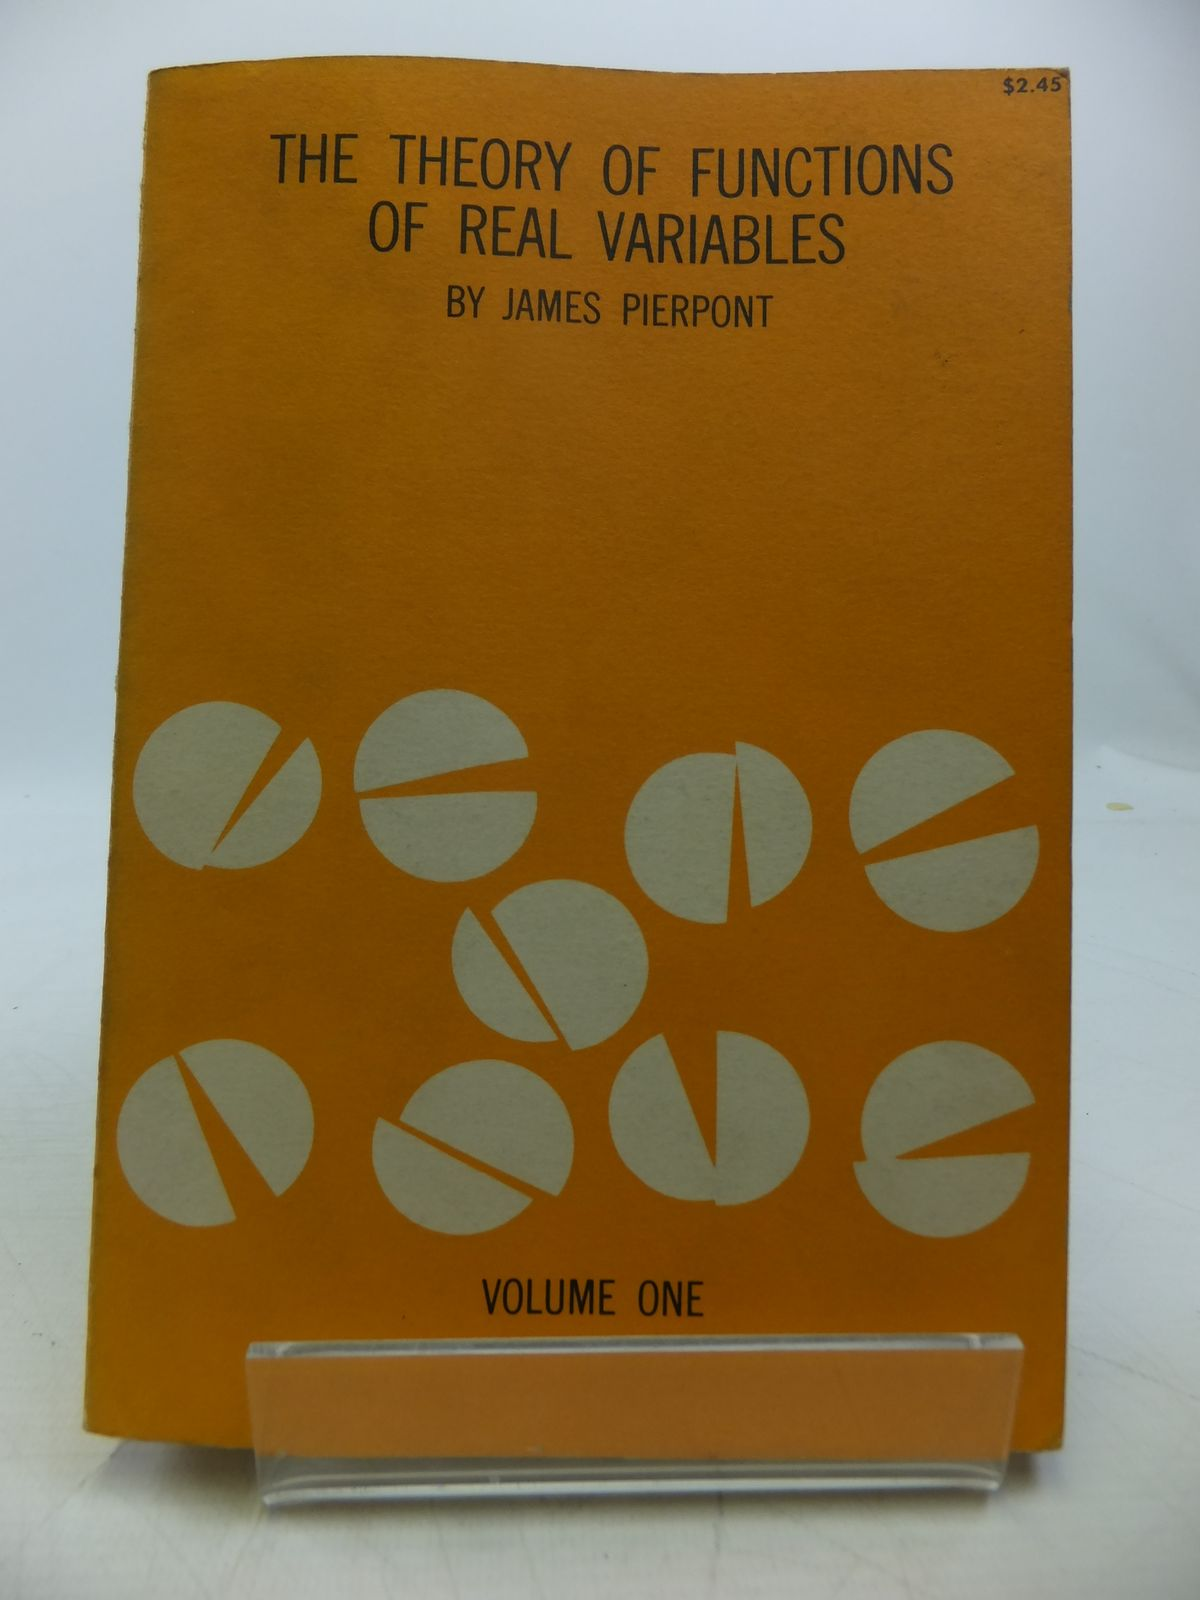 Photo of LECTURES ON THE THEORY OF FUNCTIONS OF REAL VARIABLES VOLUME I written by Pierpont, James published by Dover Publications Inc. (STOCK CODE: 1811414)  for sale by Stella & Rose's Books